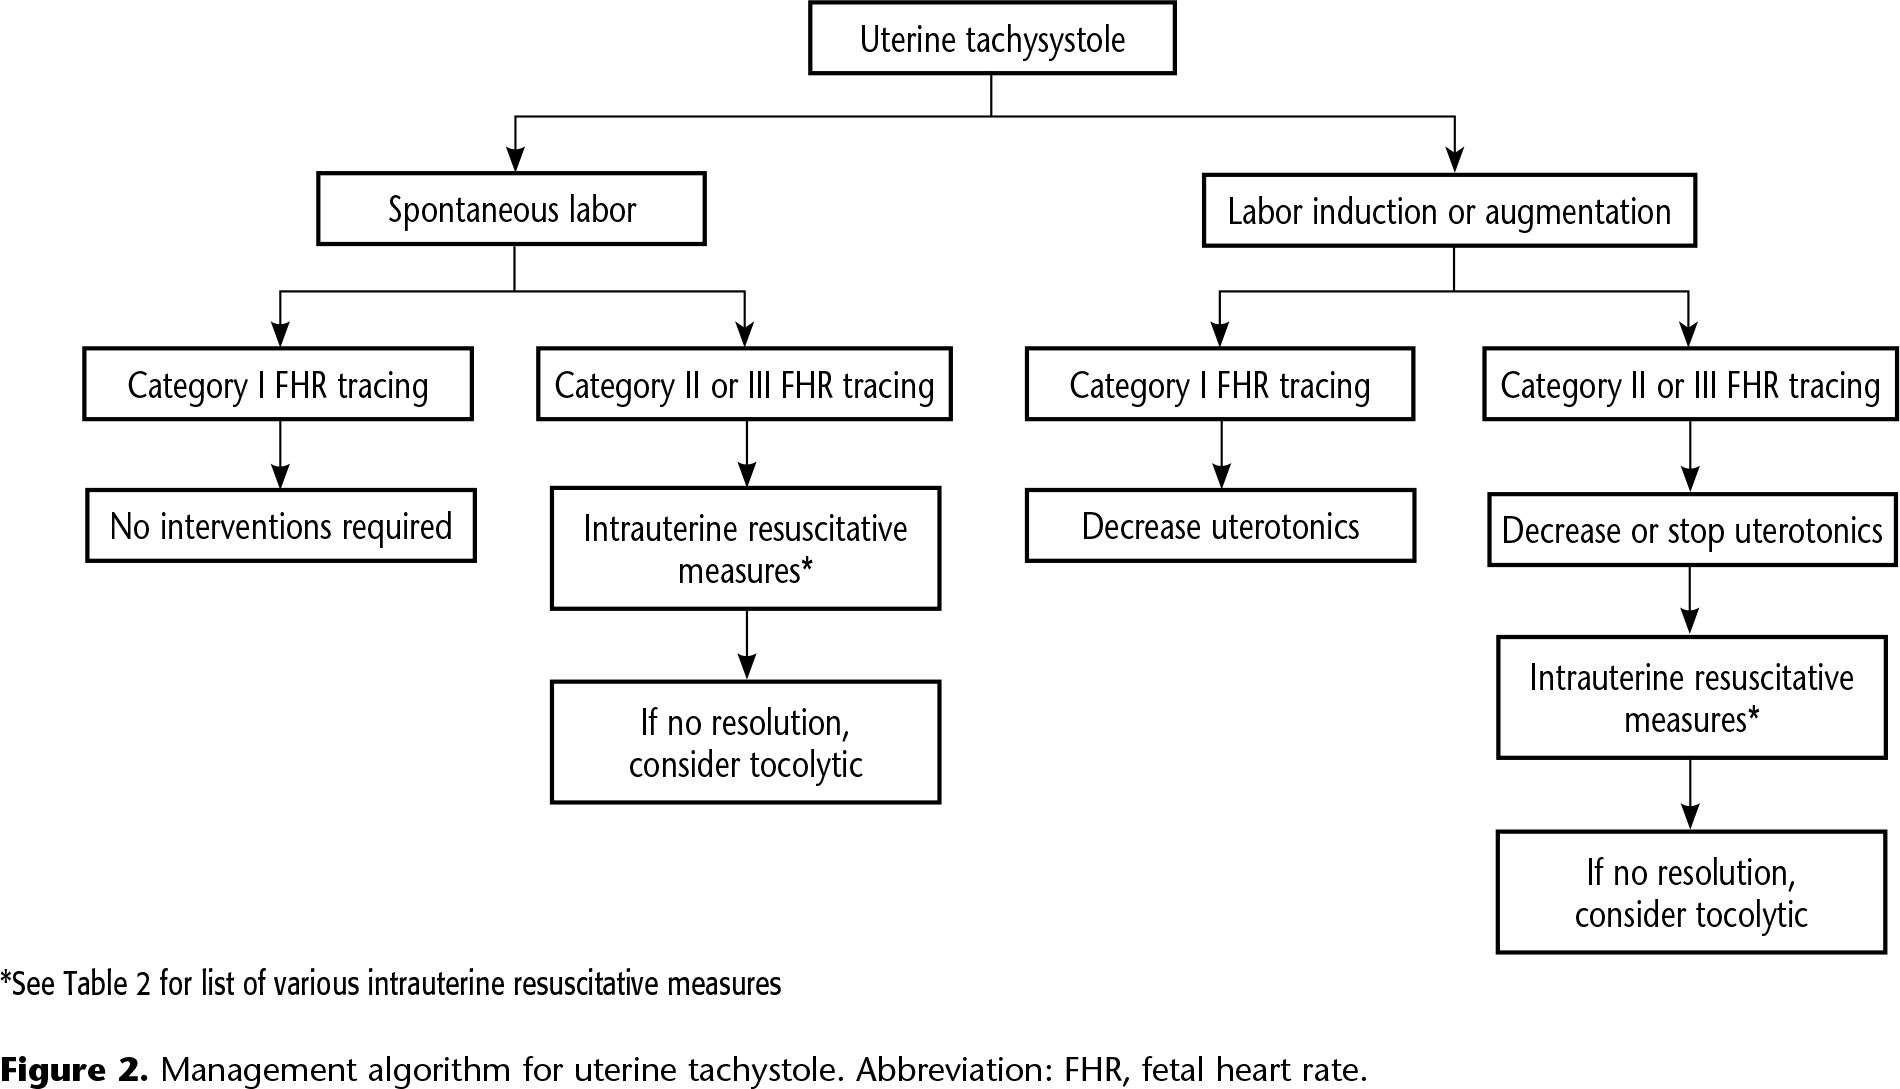 Figure 2. Management algorithm for uterine tachystole. Abbreviation: FHR, fetal heart rate